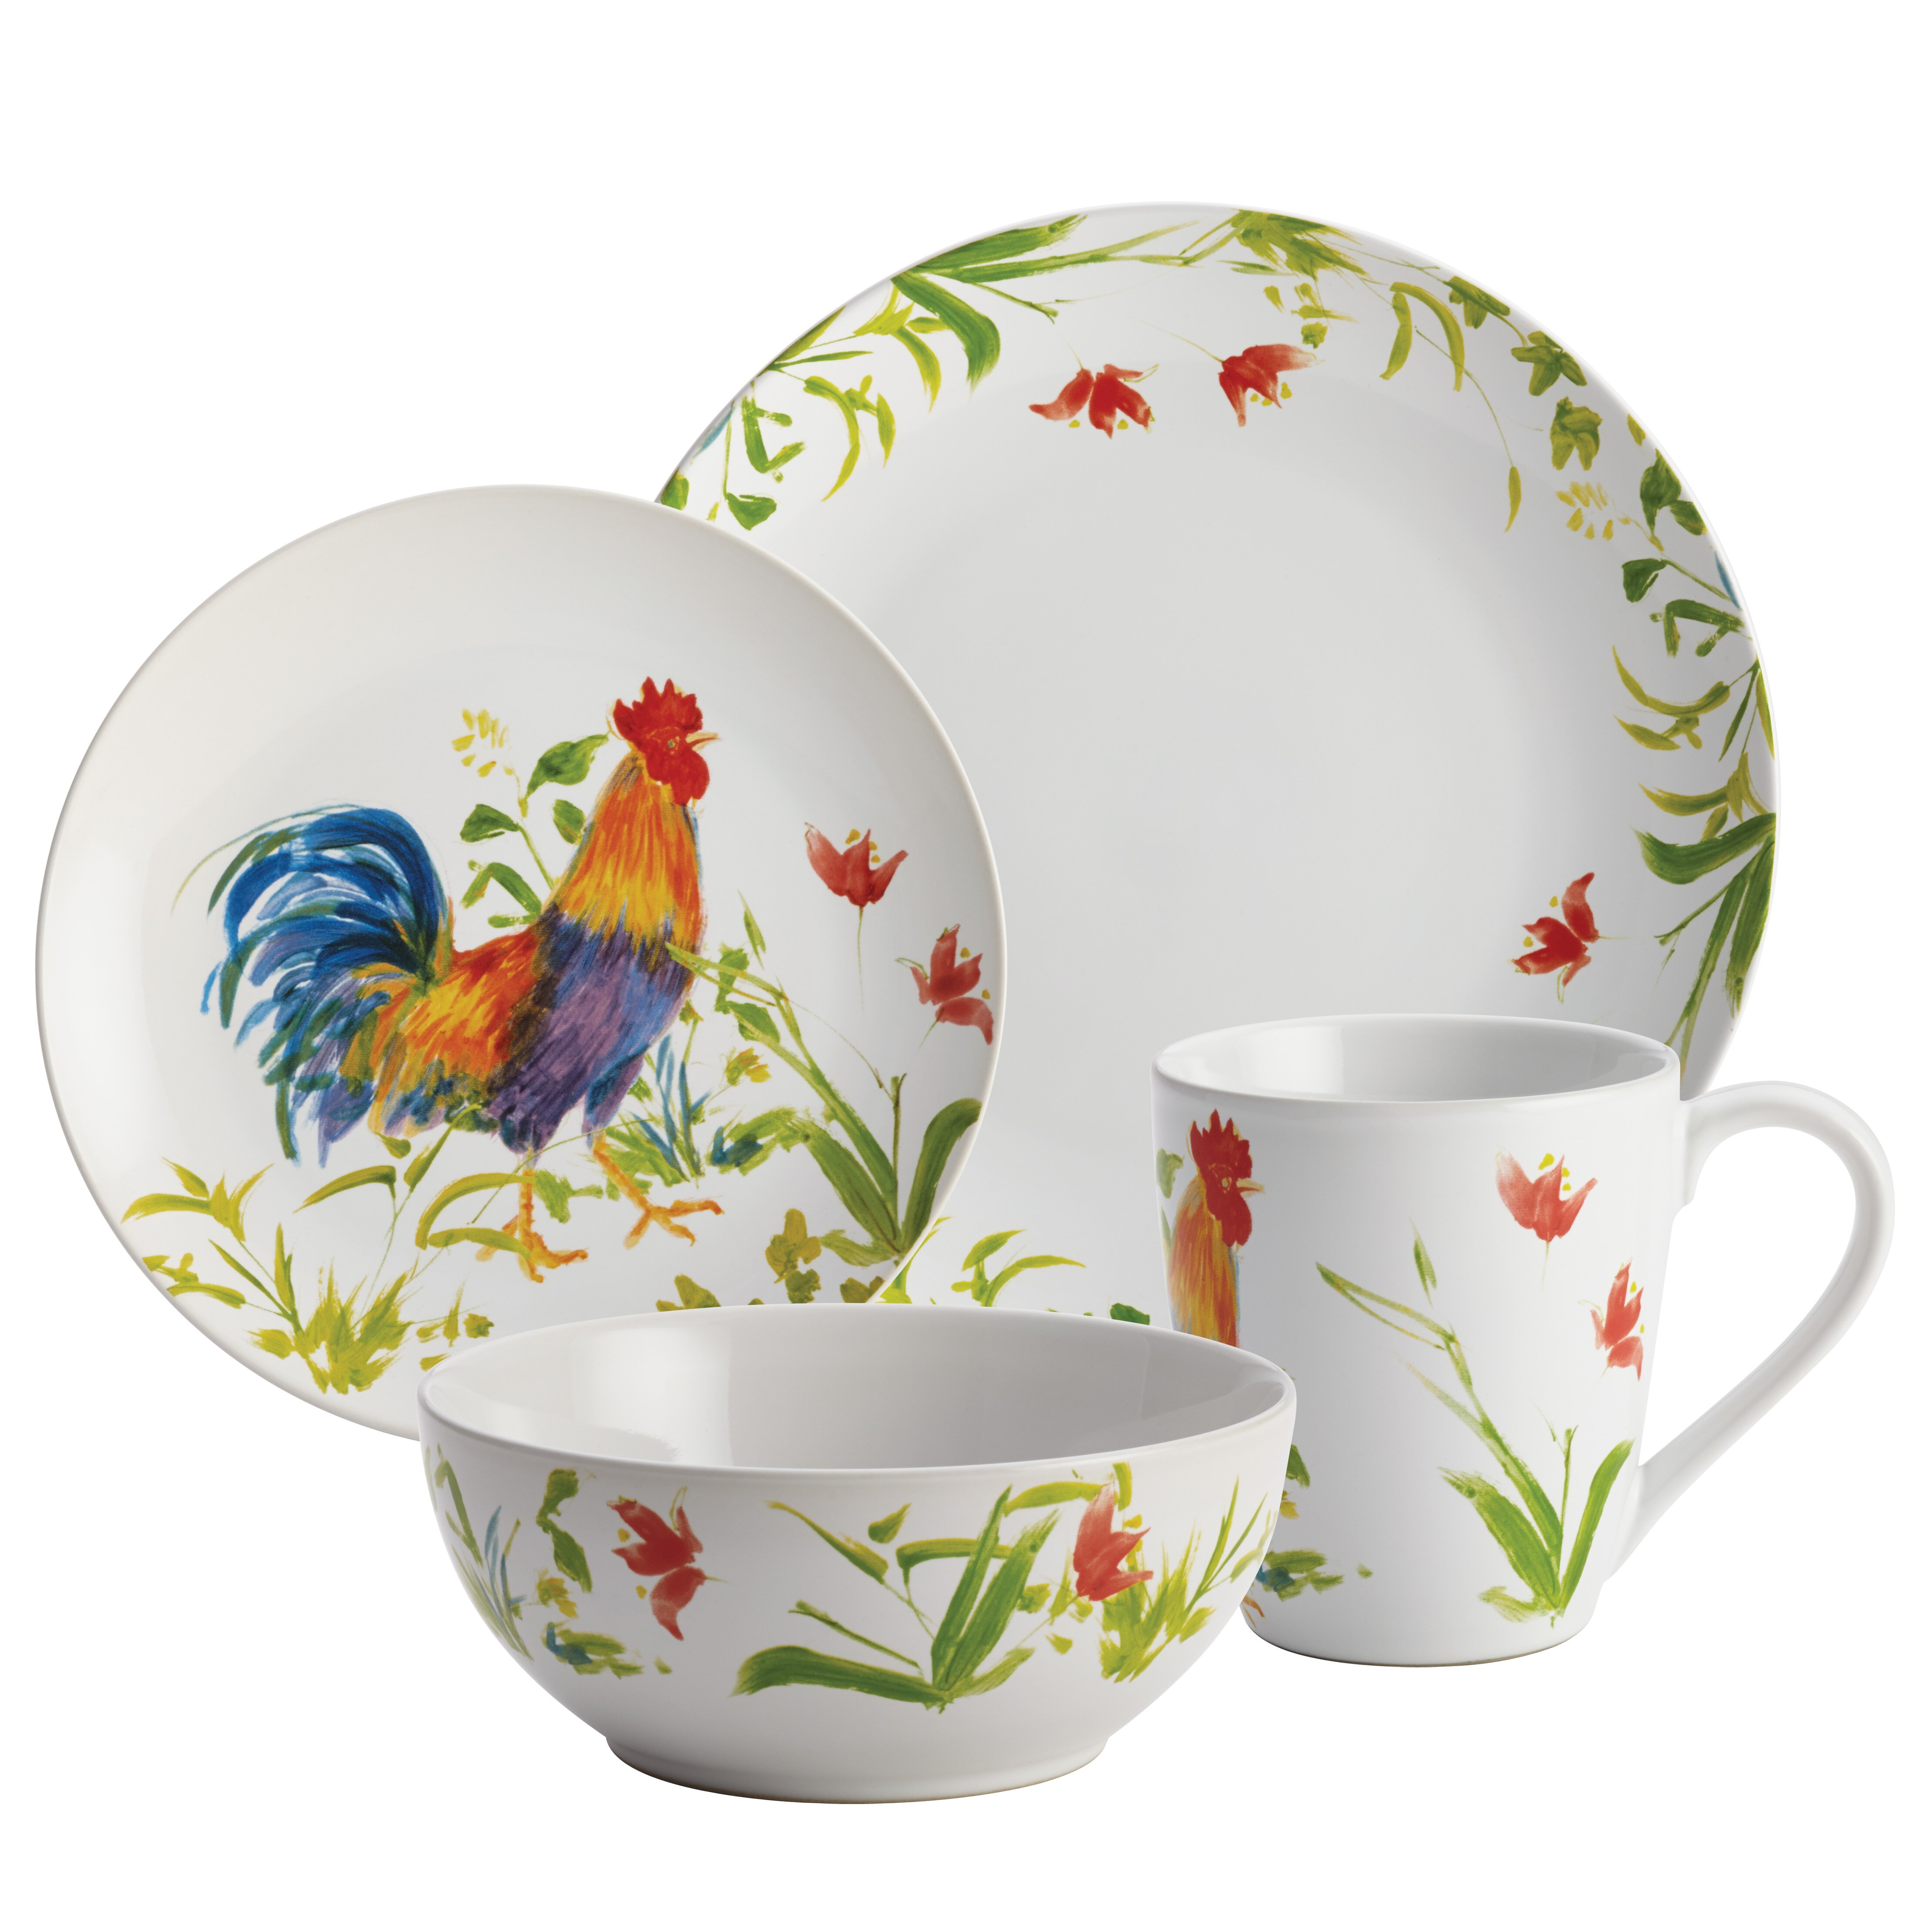 Rooster Dinnerware Sets: BonJour Meadow Rooster Stoneware 16 Piece Dinnerware Set